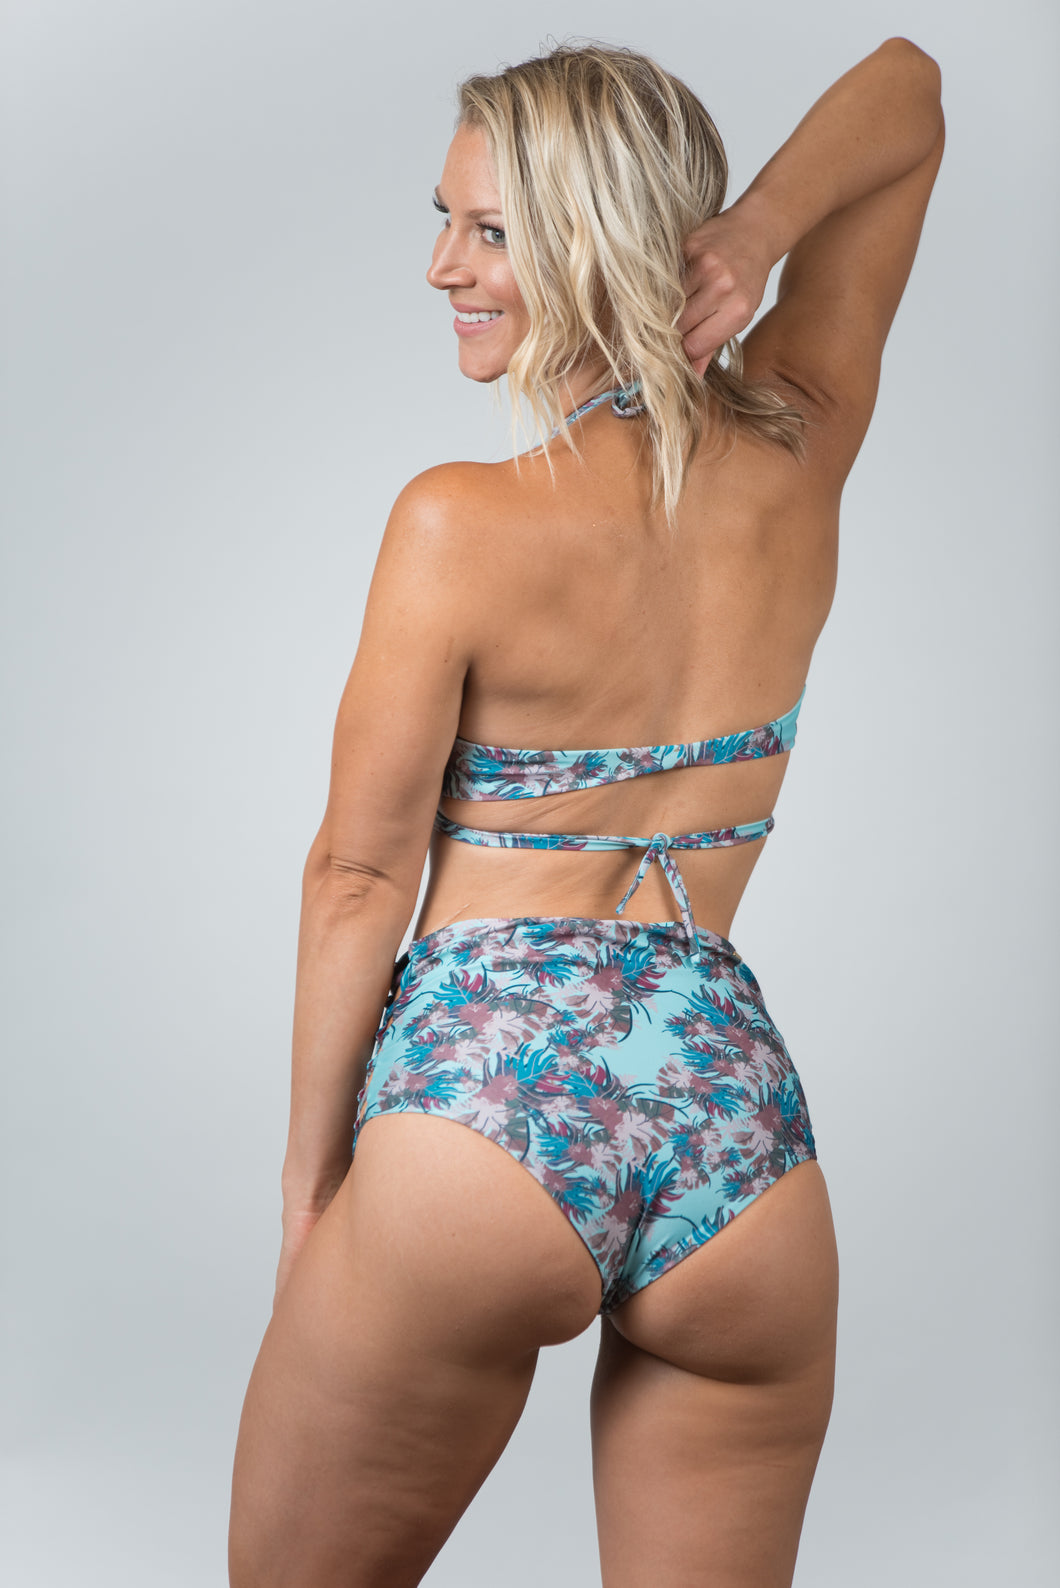 Savanna Light Blue Bottom - Kiwi Elite Swimwear